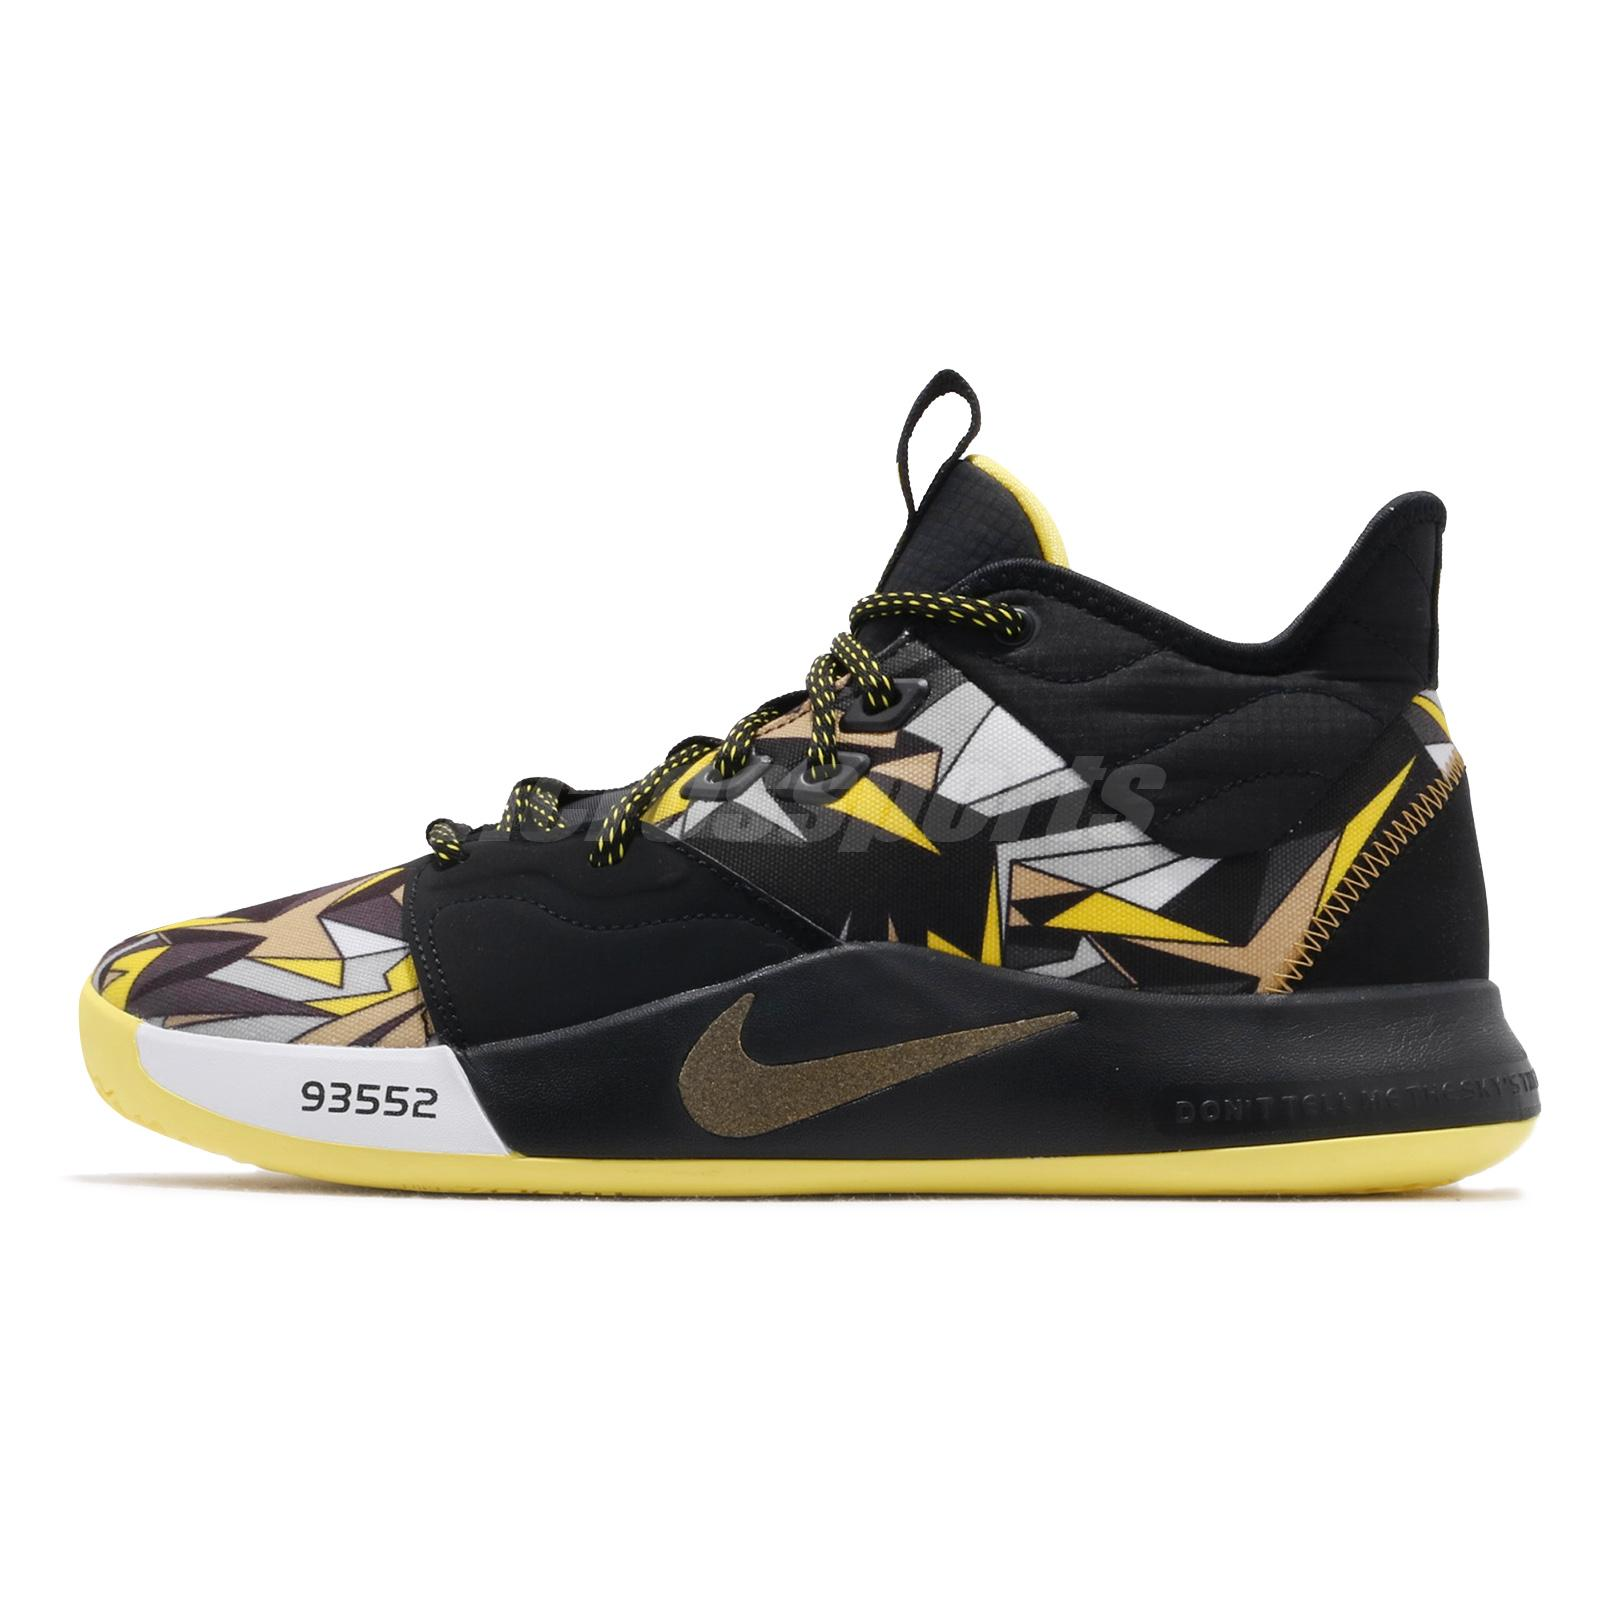 pretty nice bbffb 6063a Details about Nike PG 3 EP III Paul George Mamba Mentality Men Basketball  Shoes AO2608-900